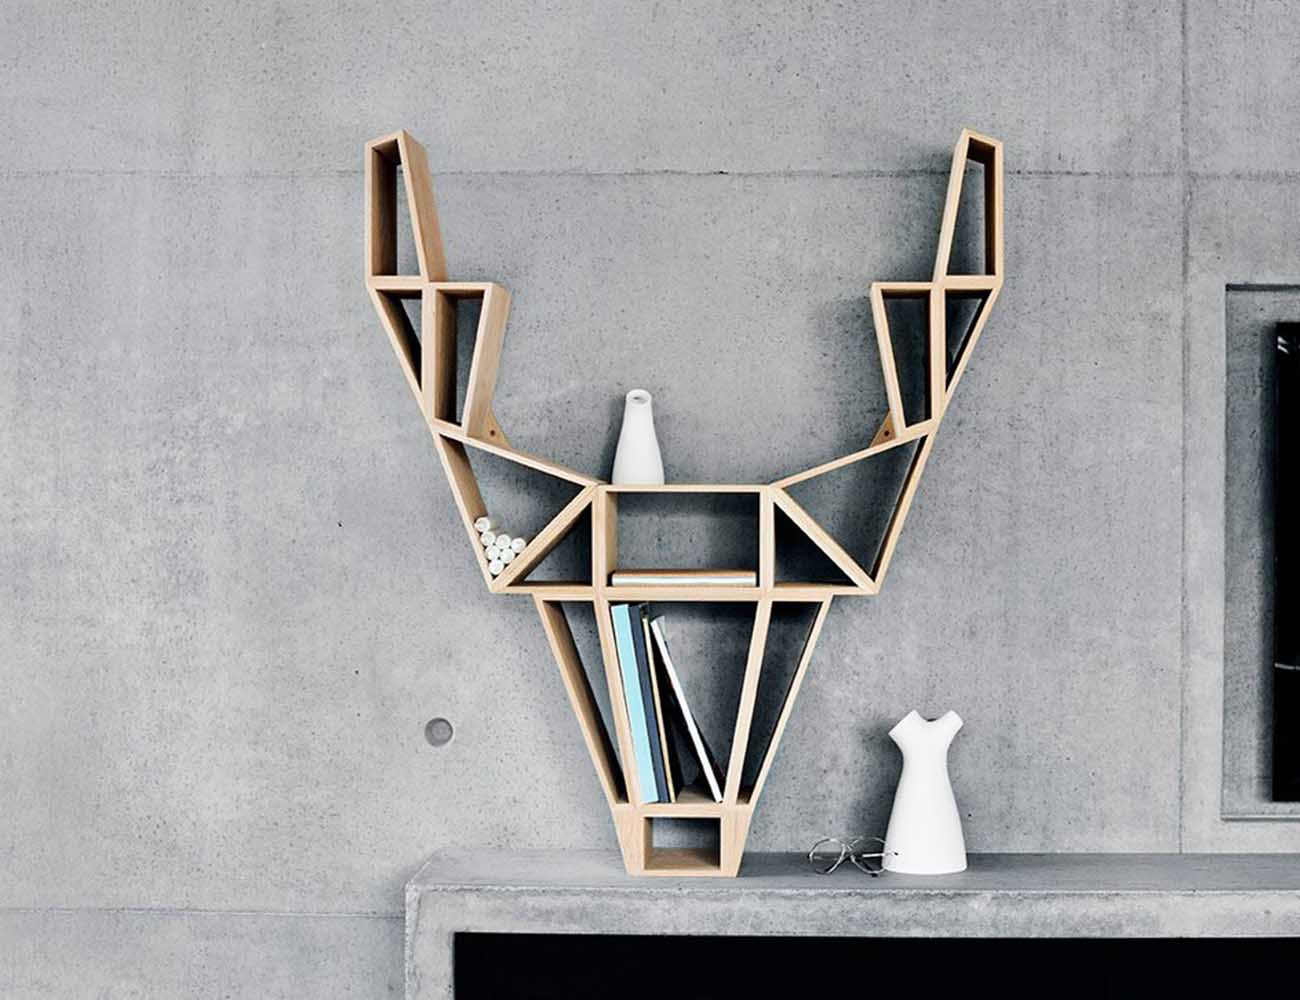 Deer Shelf – Impressive Bookshelf Inspired From Wild Deer